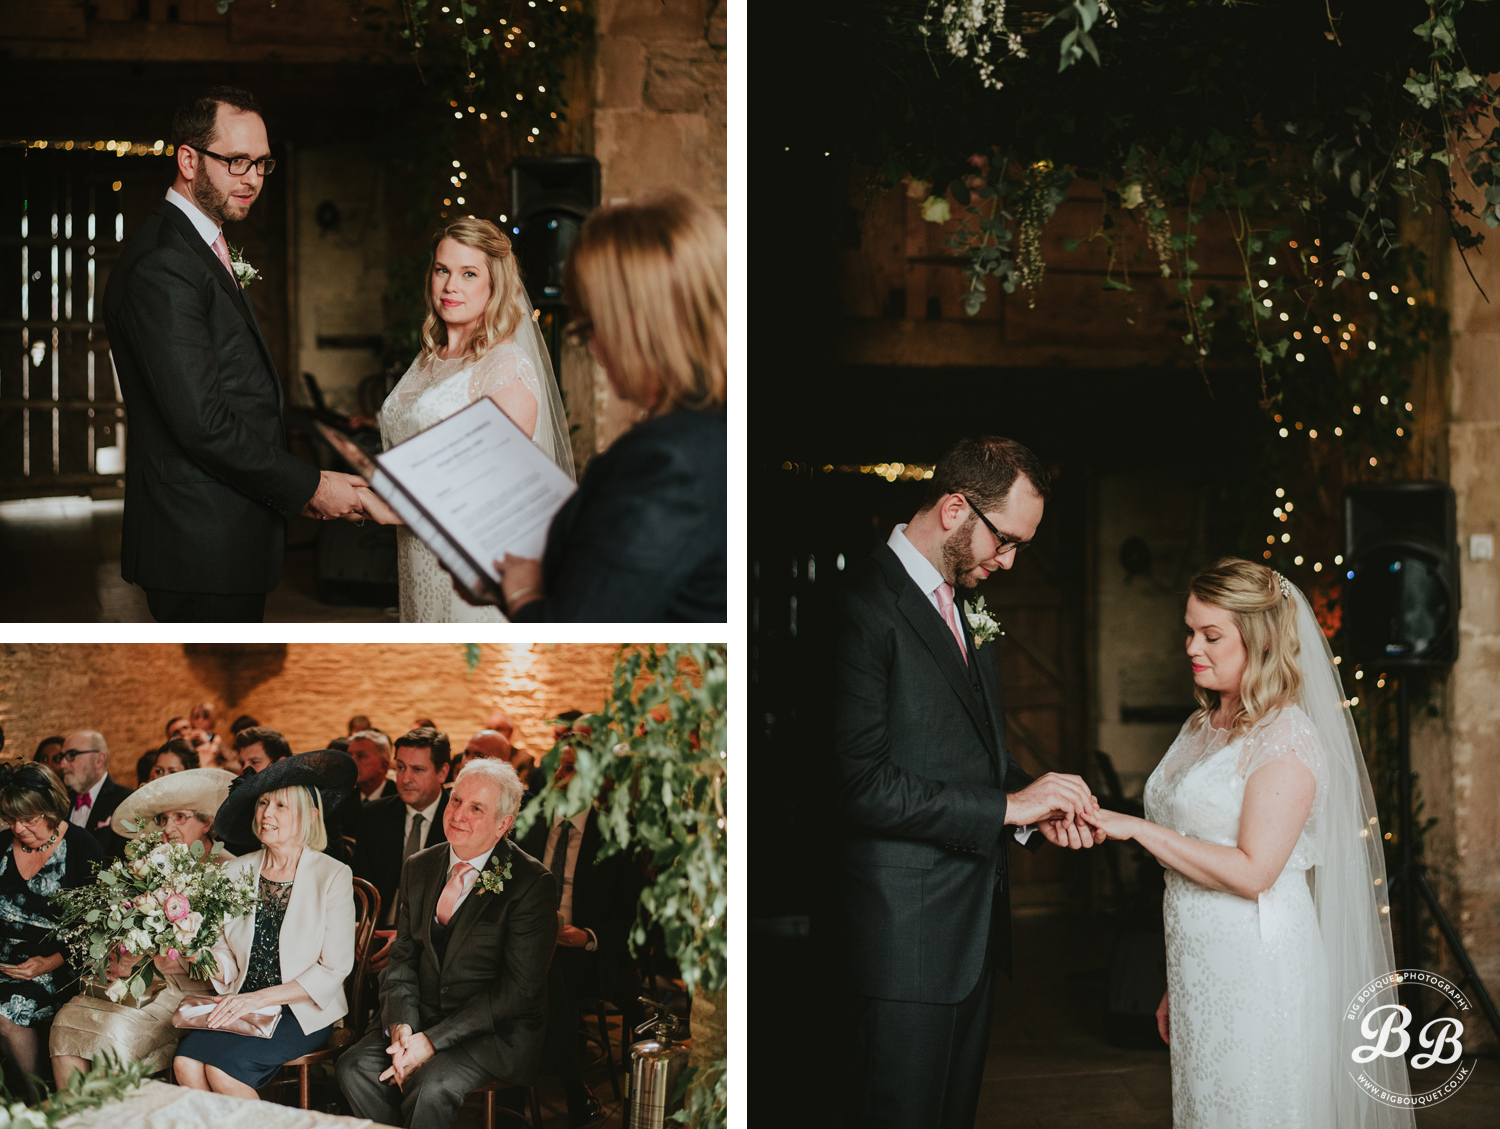 029-wastoneb_feb18_bb - Abi & Will's Wedding at Cripps Stone Barn, Cheltenham - Featured Wedding Photography